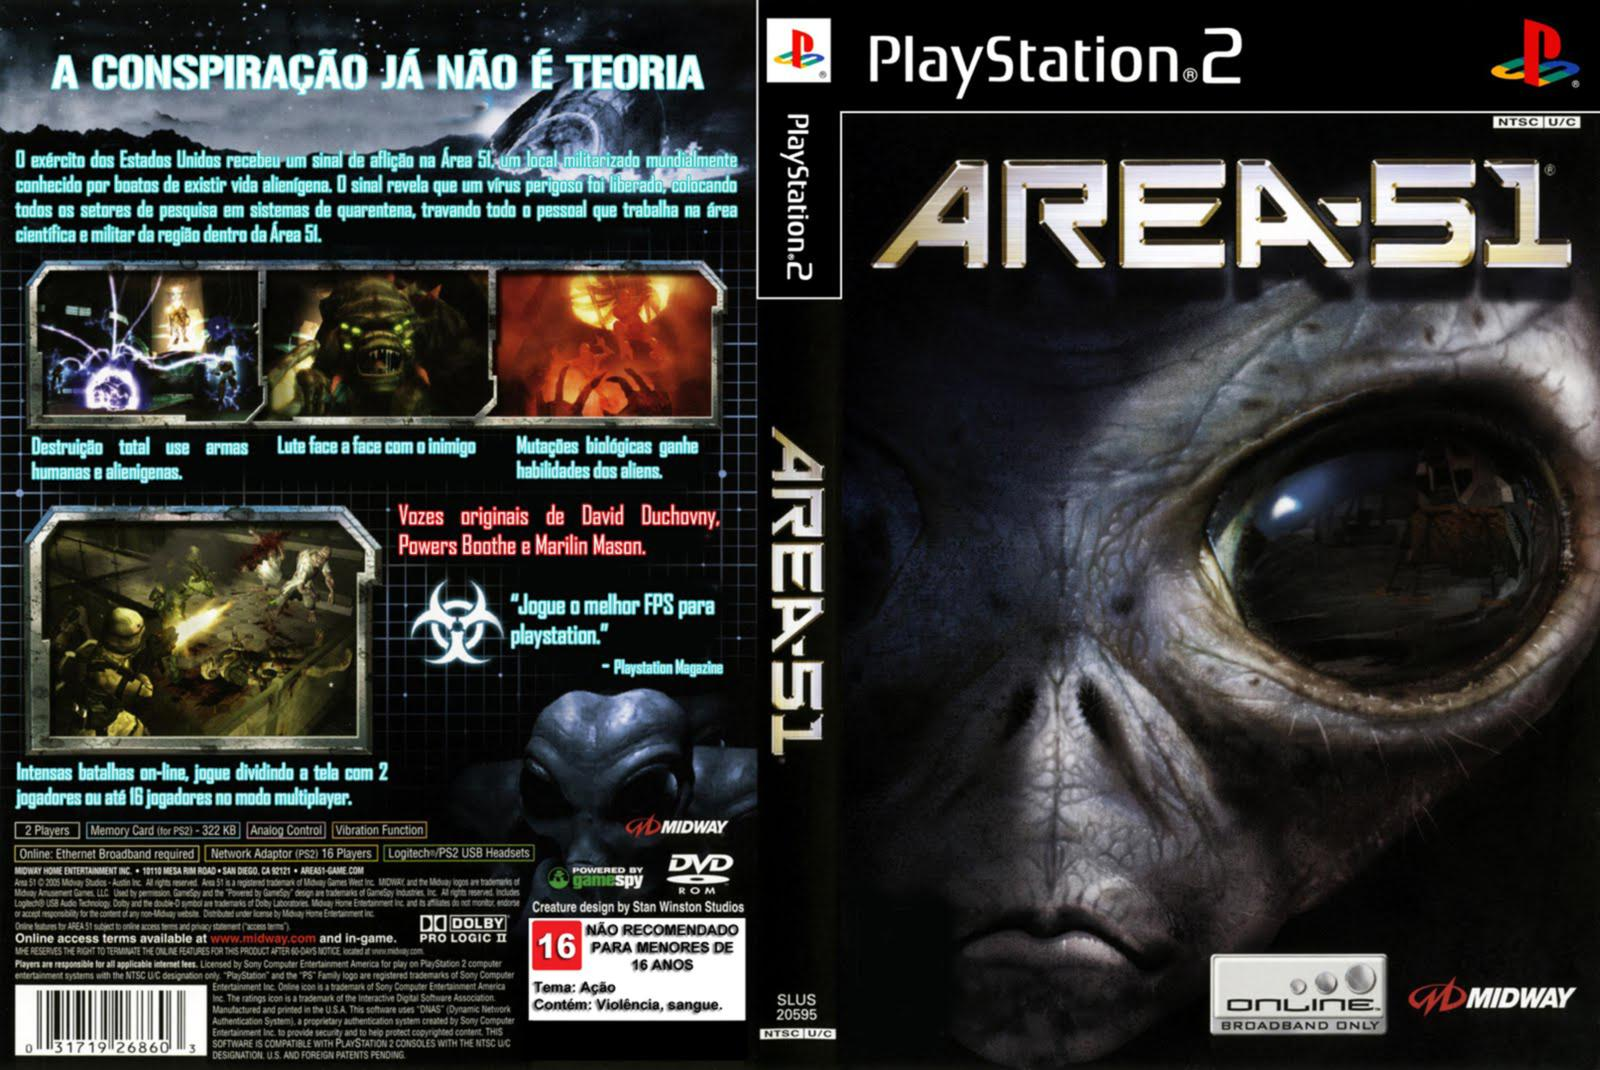 Area 51 PS2 Game